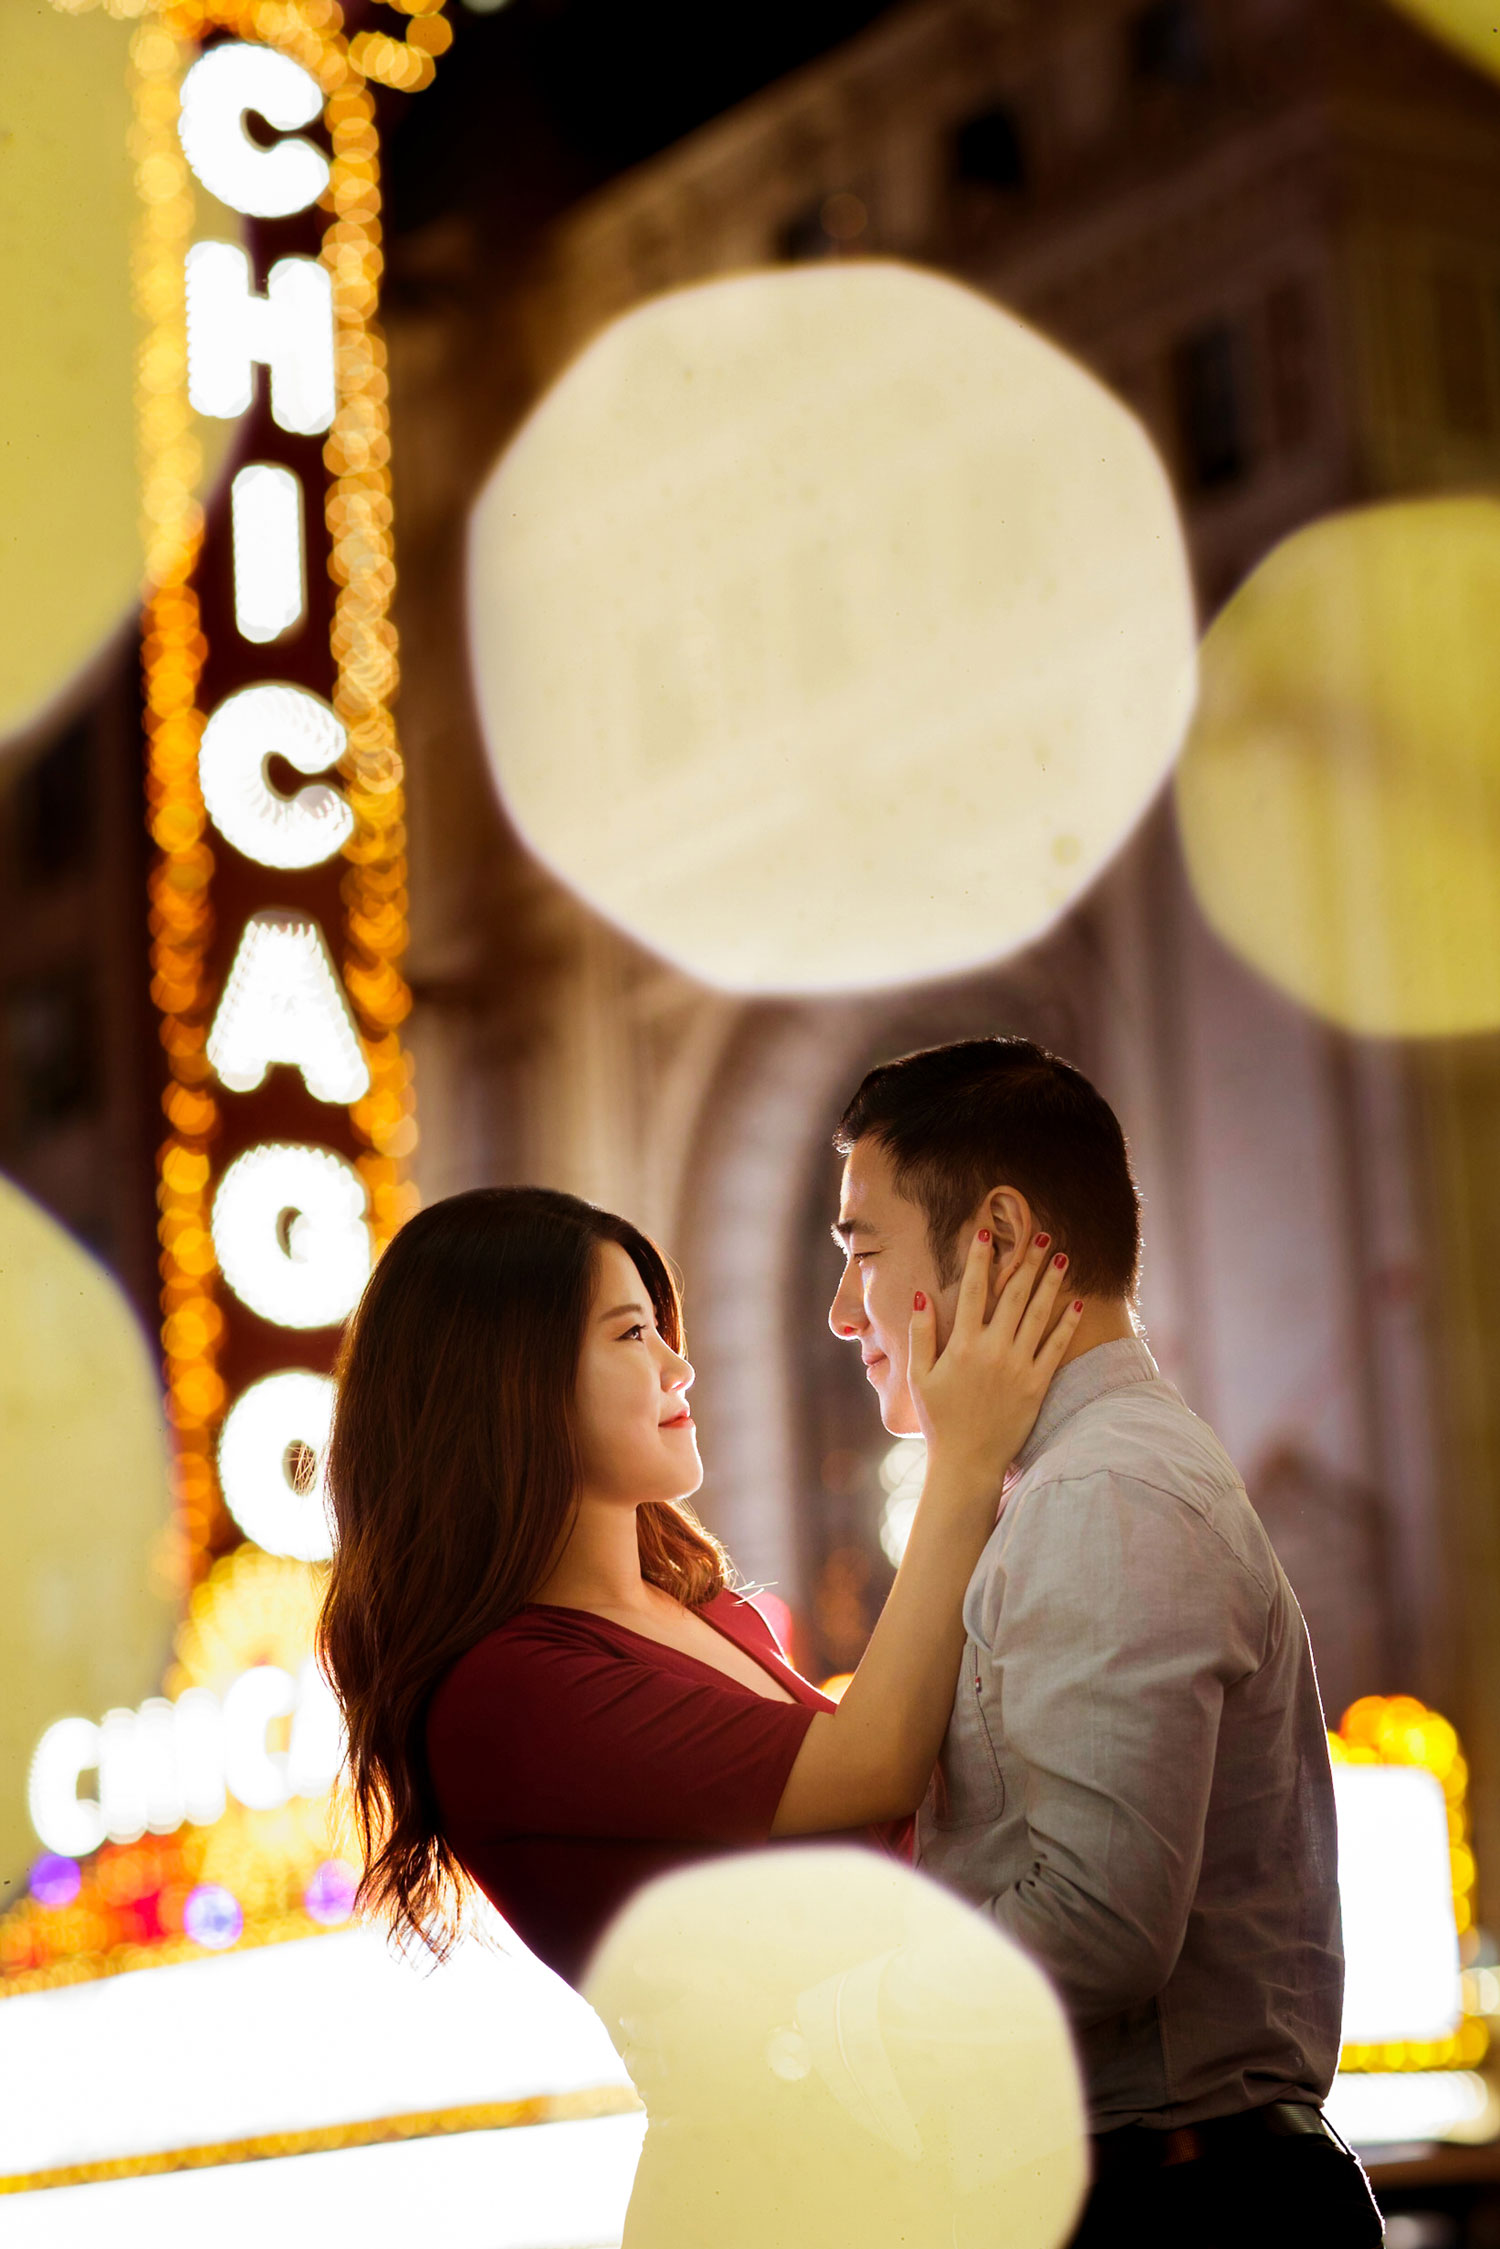 Engagement shoot in Chicago e-session chicago theatre chicago theater portrait